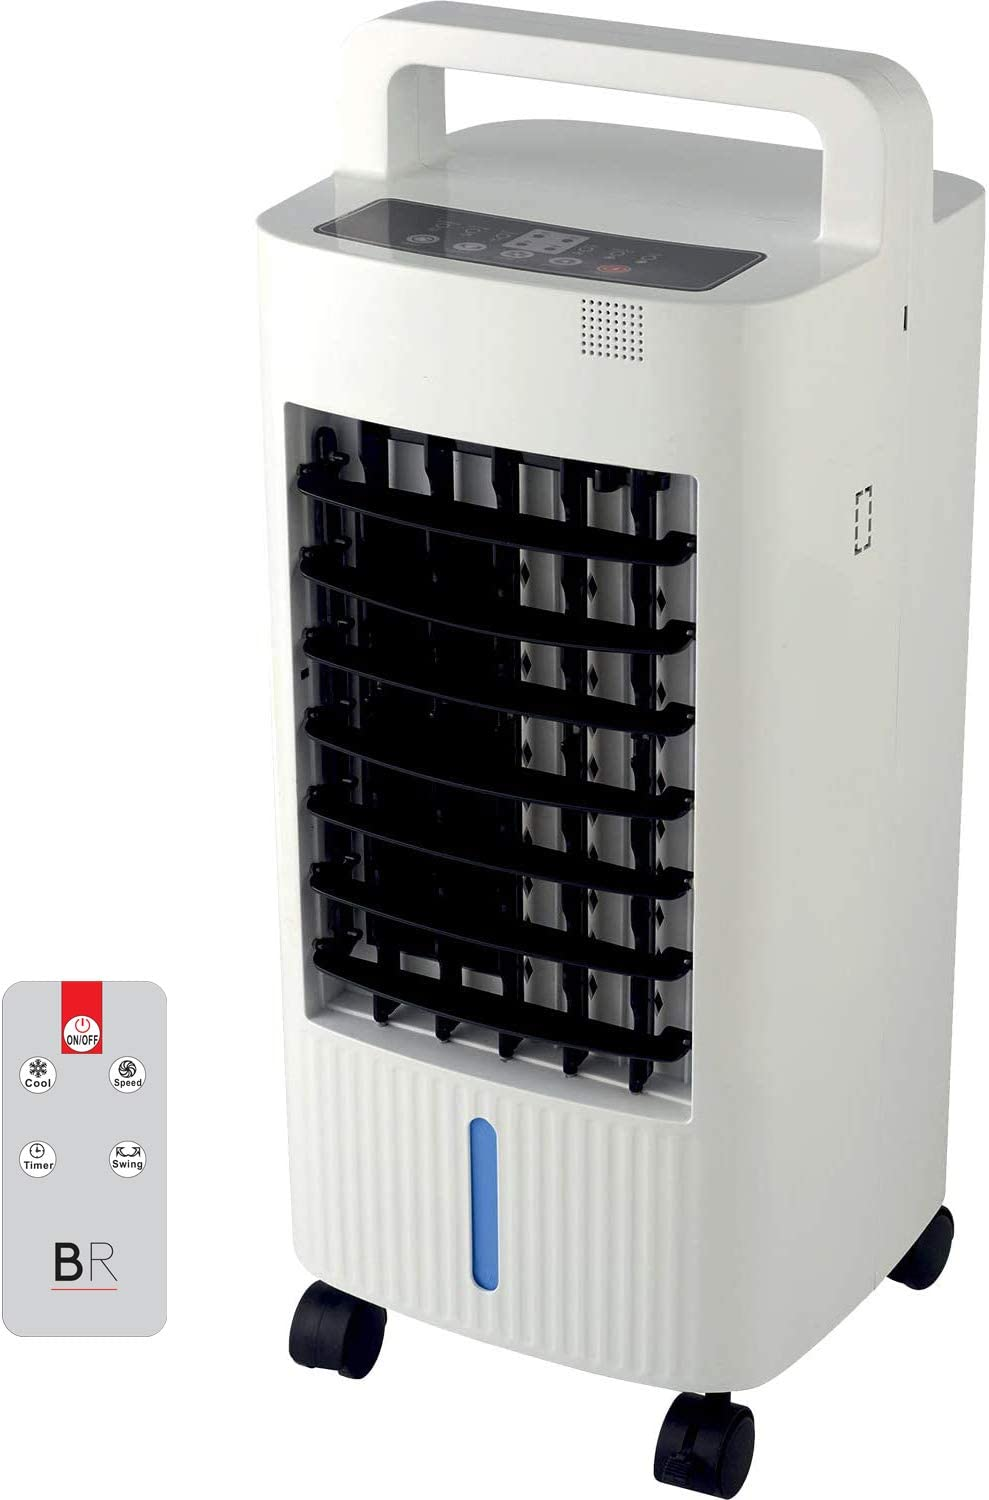 CaribbeanBlue New Room Refresher Air Cooler with 6.0L Evaporative Water Fan Environment Friendly Consumes 70w Evaporative Cooler Cooling for your Home and Office